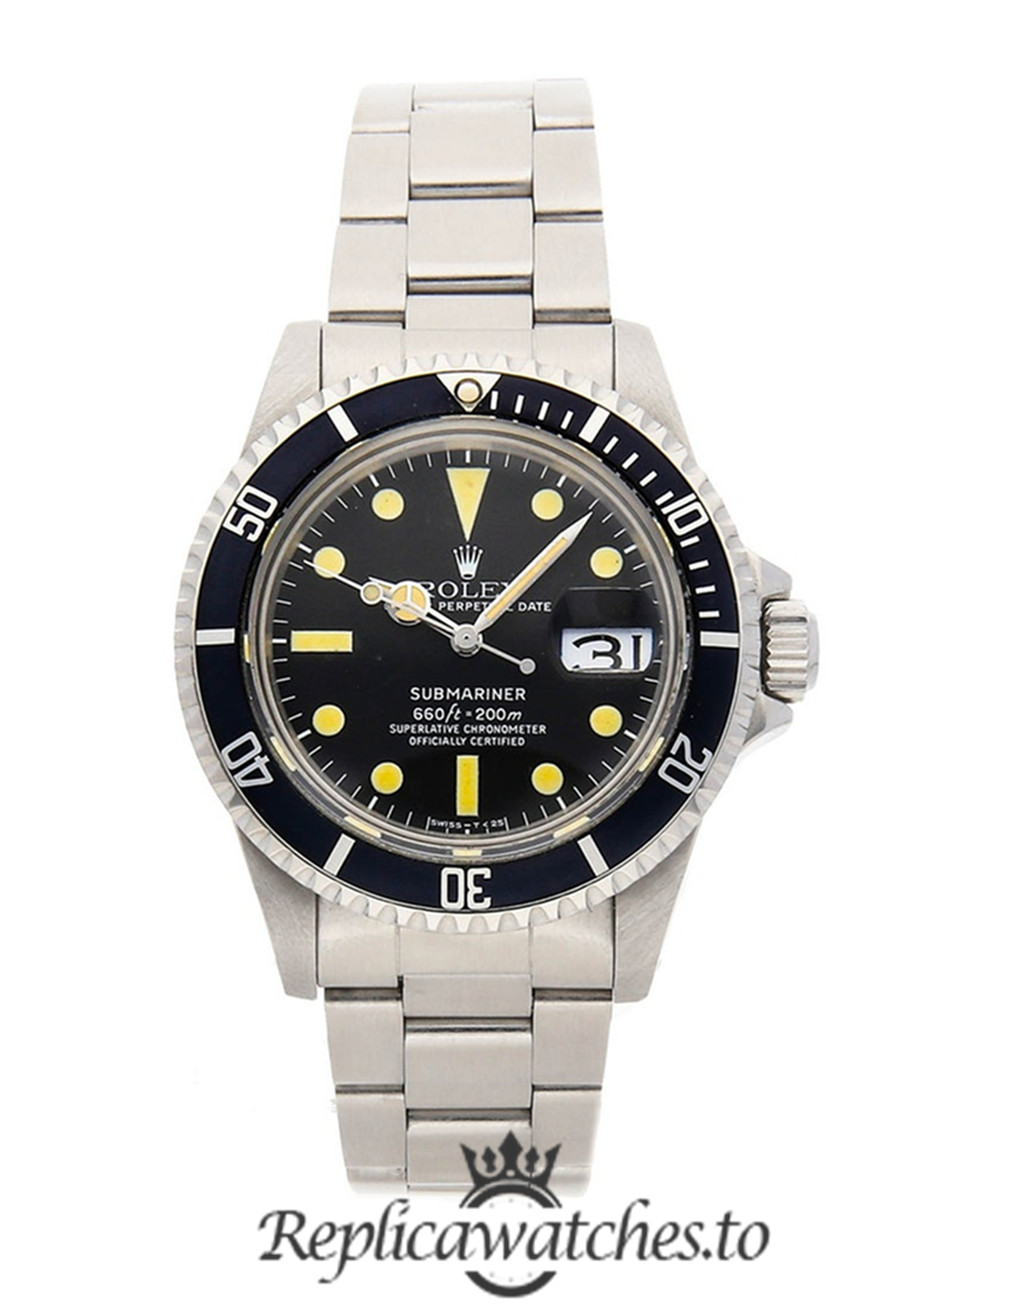 Rolex Submariner Replica 1680 Black Bezel 40MM